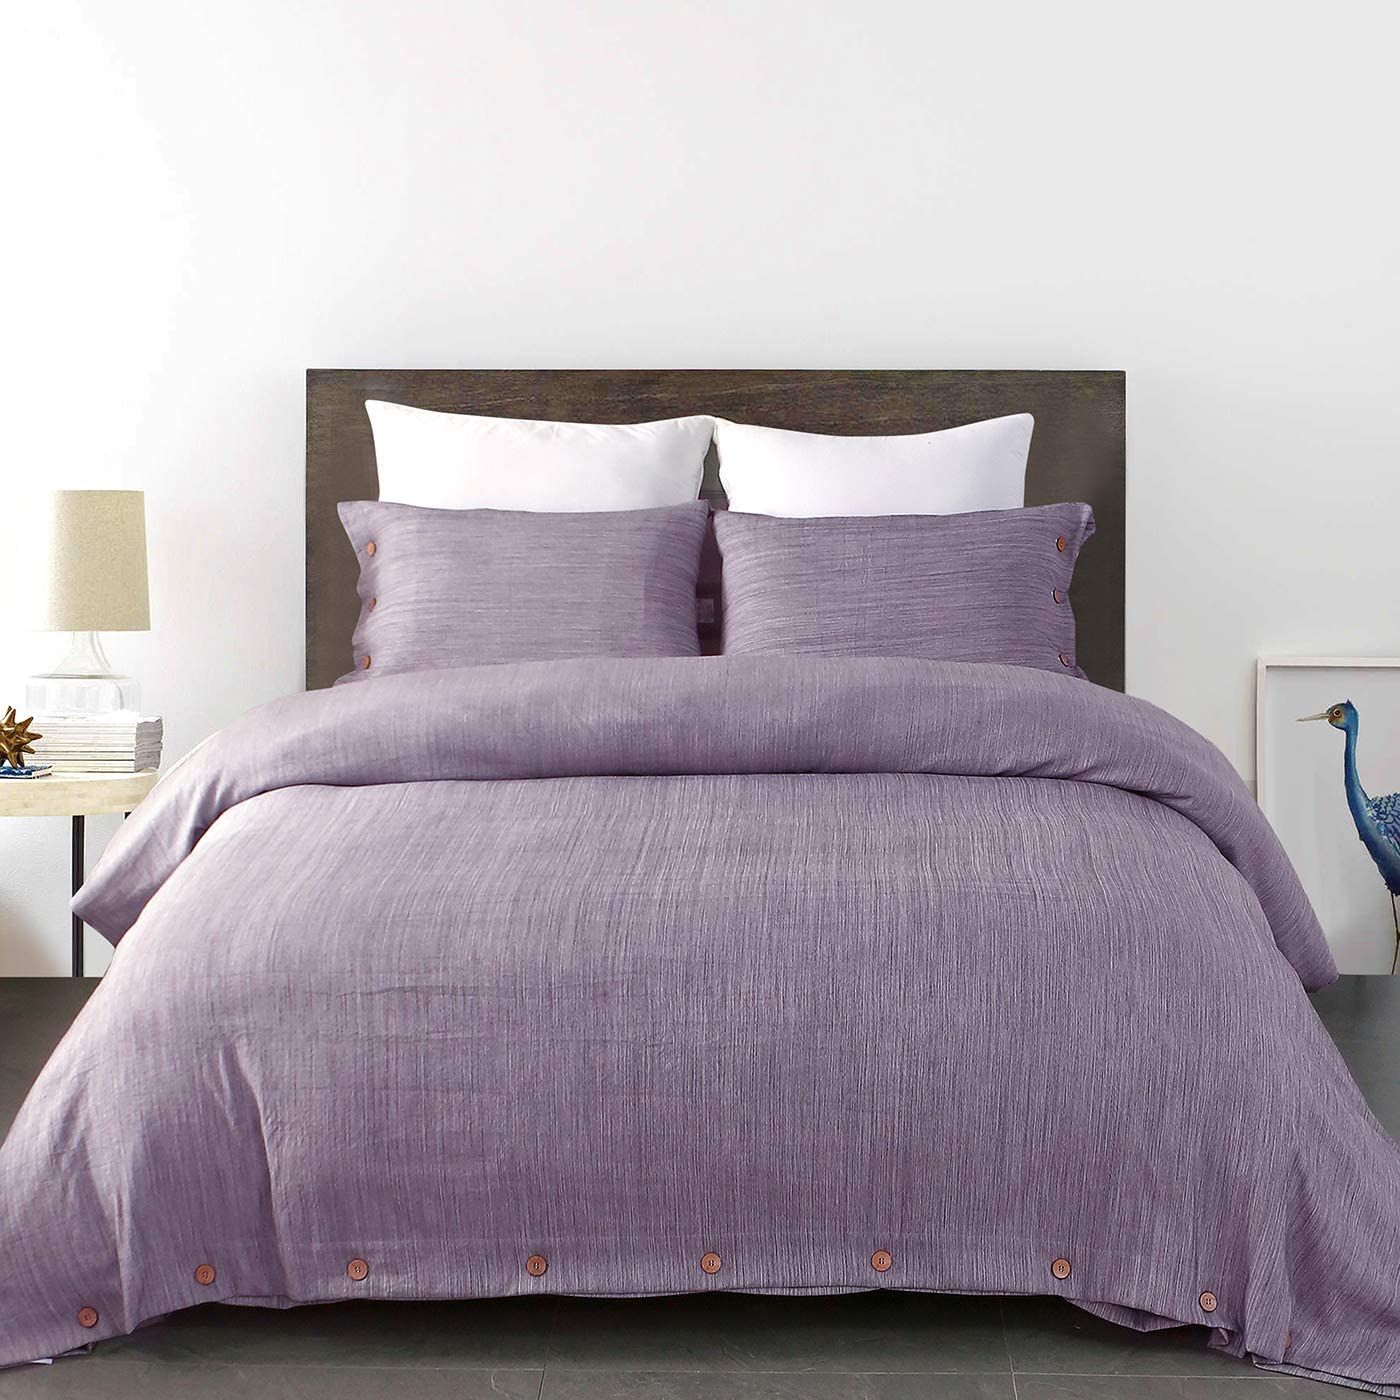 Linen Like Solid Color Bedding Comforter Cover Set with Button Closure (Purple, Queen)